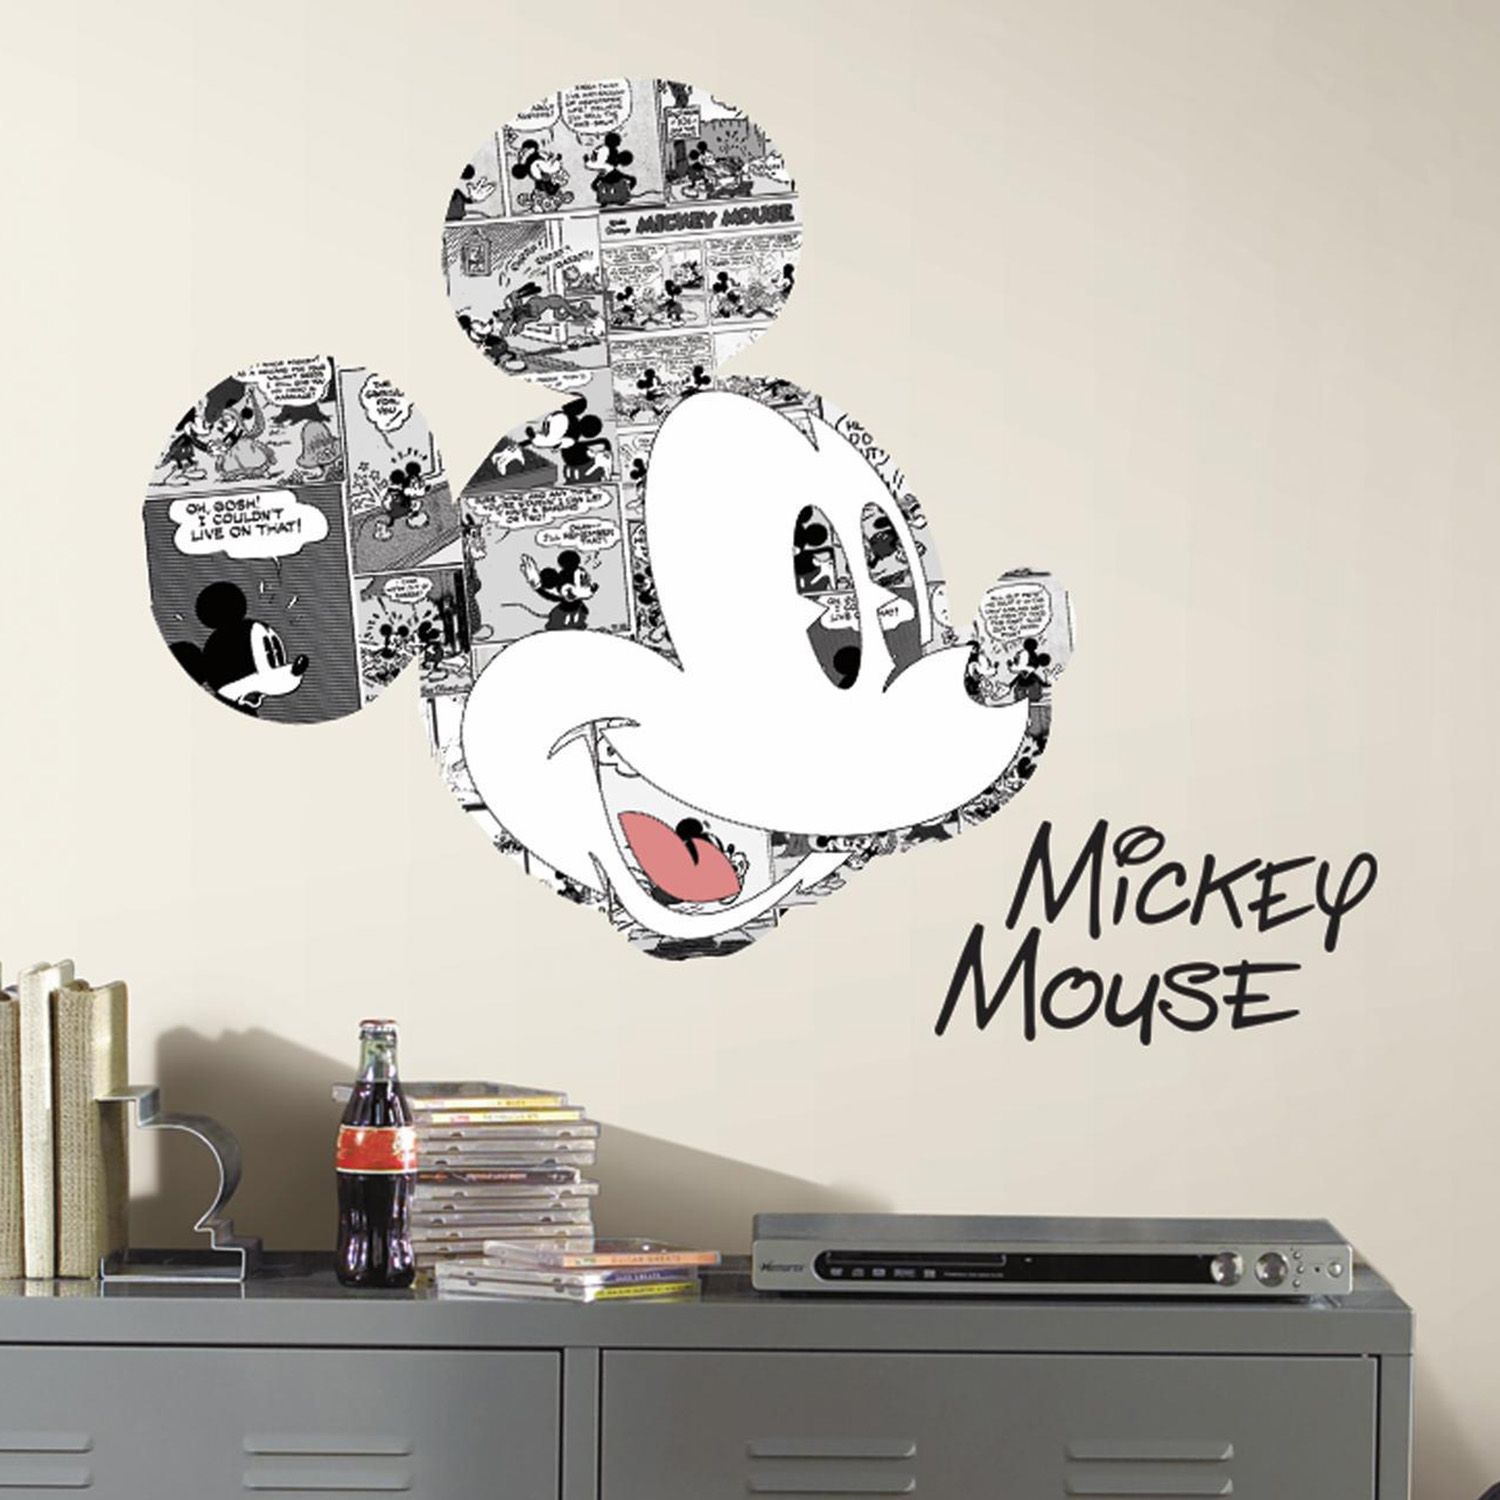 Disney Mickey Mouse Clubhouse Wall Decals By Fathead. Regular